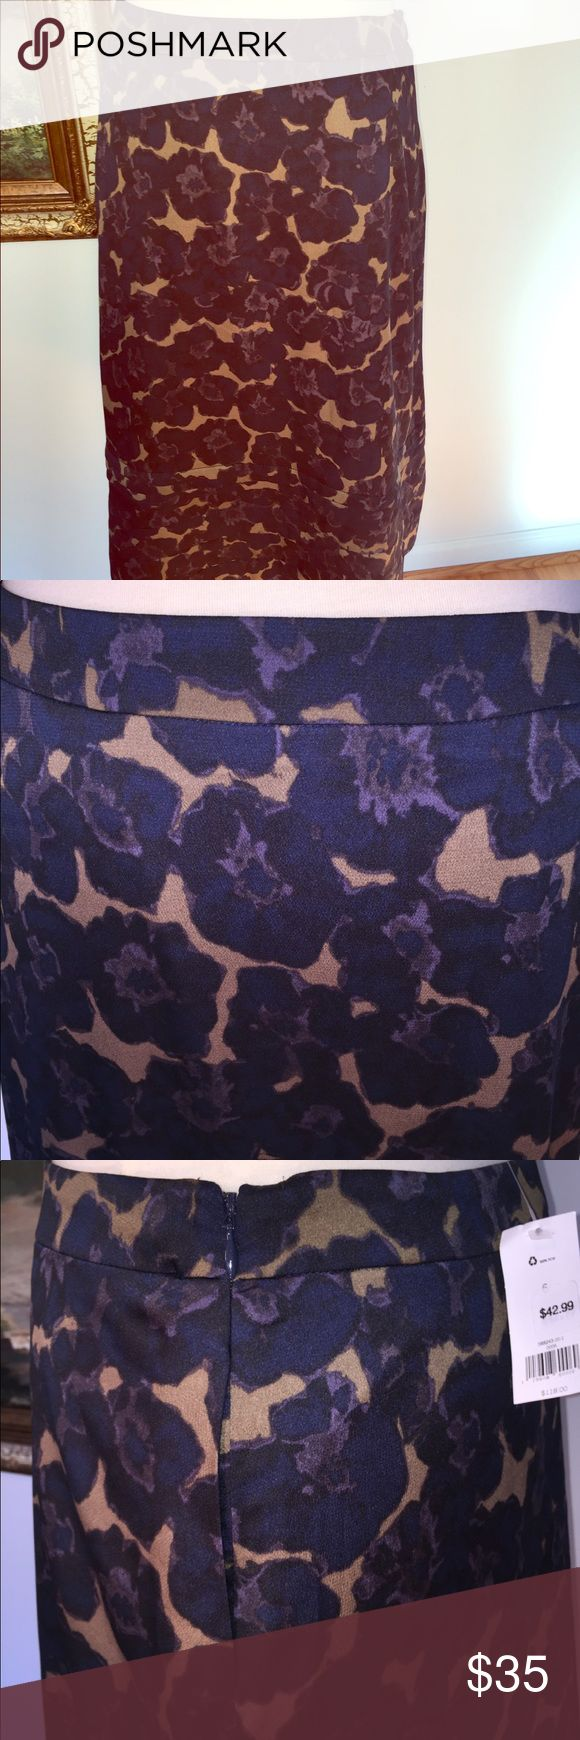 "Banana Republic Stitched Floral Midi Skirt A GORGEOUS skirt- color, style, design, cut, fit, details- all superb. Has two discreet side pockets. Side zipper. Lined. NWT Length: 29""  Waist laid flat: app 15"" The color is dark navy/ light purple flower patterns on an olive green. Banana Republic Skirts"